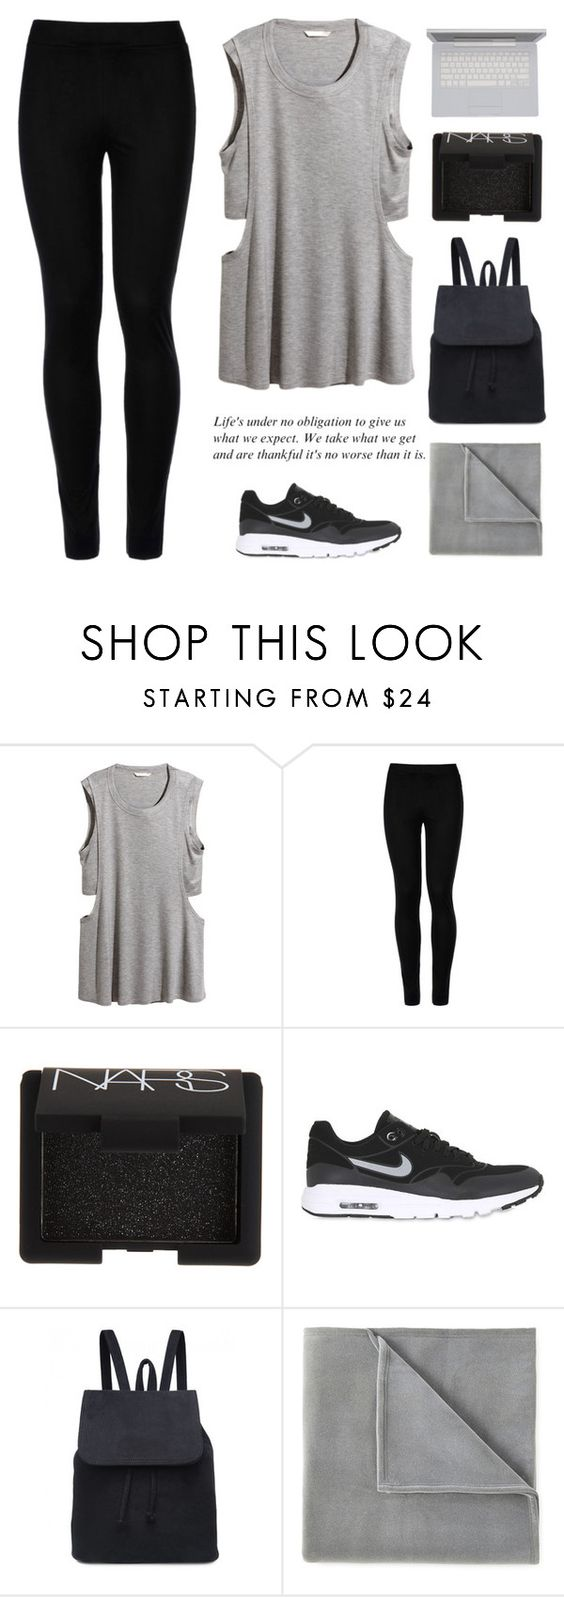 """""""Hmm"""" by blasphem-y ❤ liked on Polyvore featuring H&M, Wolford, NARS Cosmetics, NIKE, Vellux and fitness"""